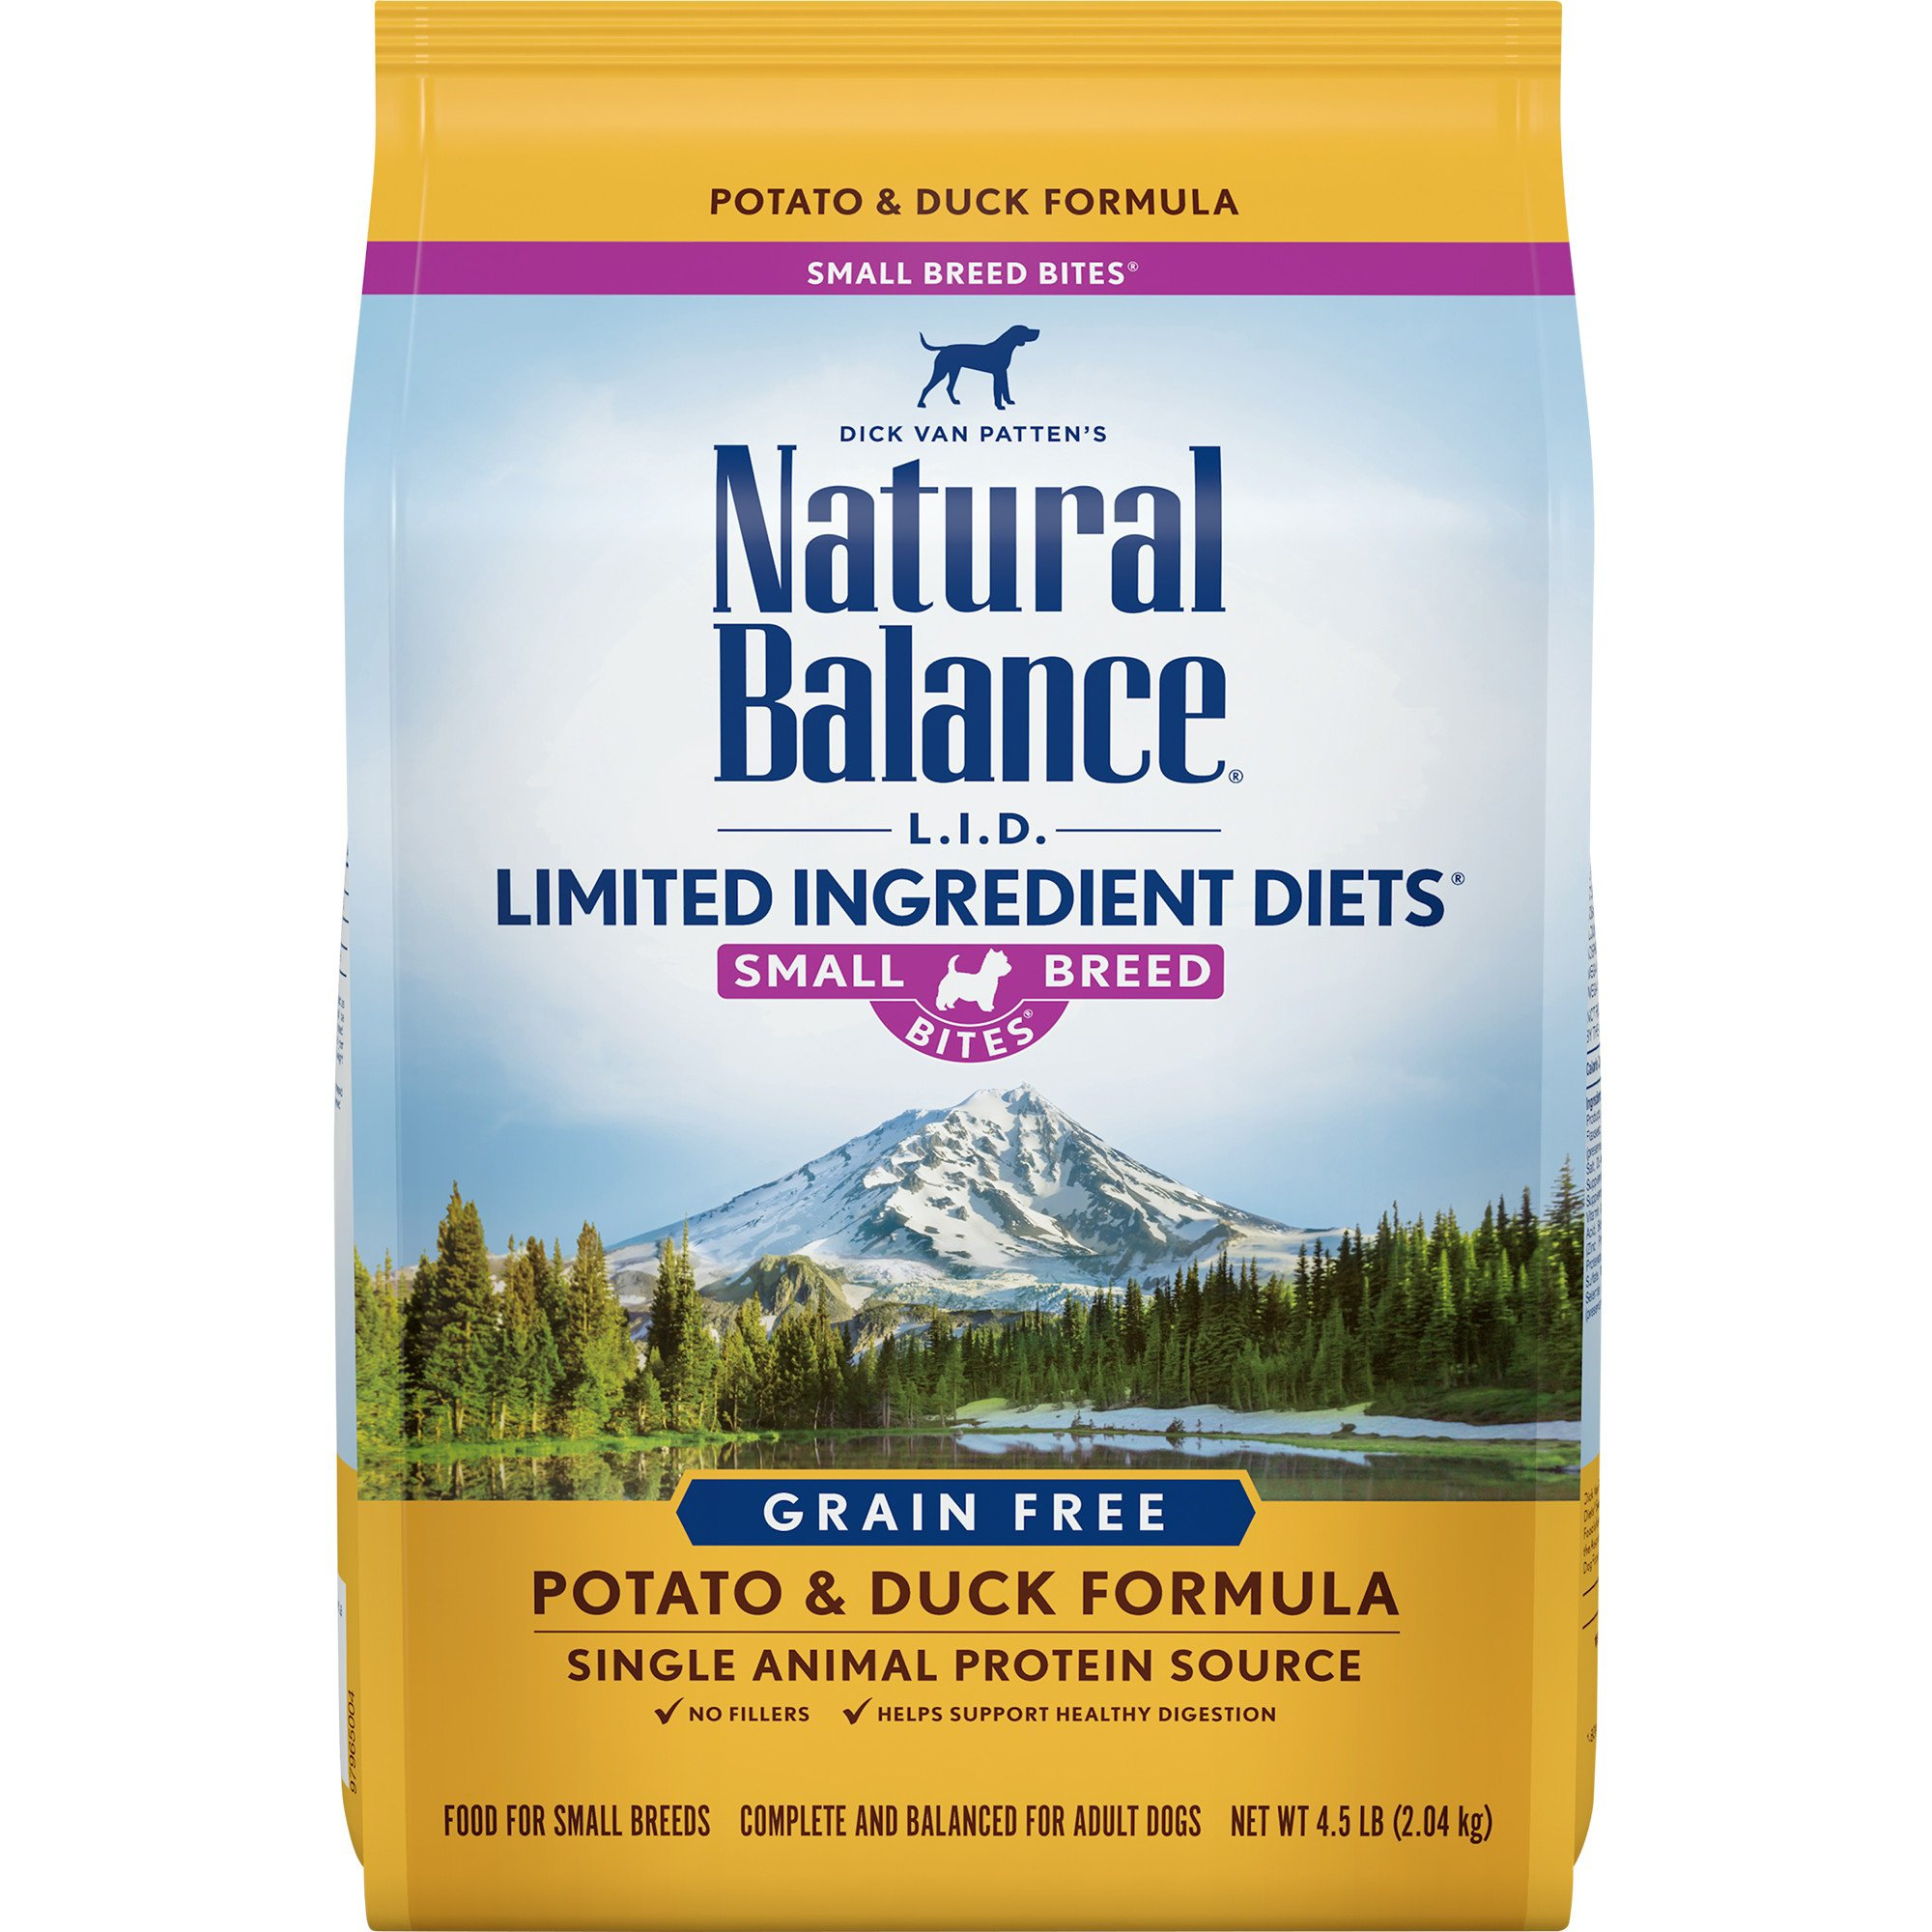 Natural Balance Small Breed Bites L.I.D. Limited Ingredient Diets Grain-Free Potato & Duck Formula Dry Dog Food, 4.5 lbs.